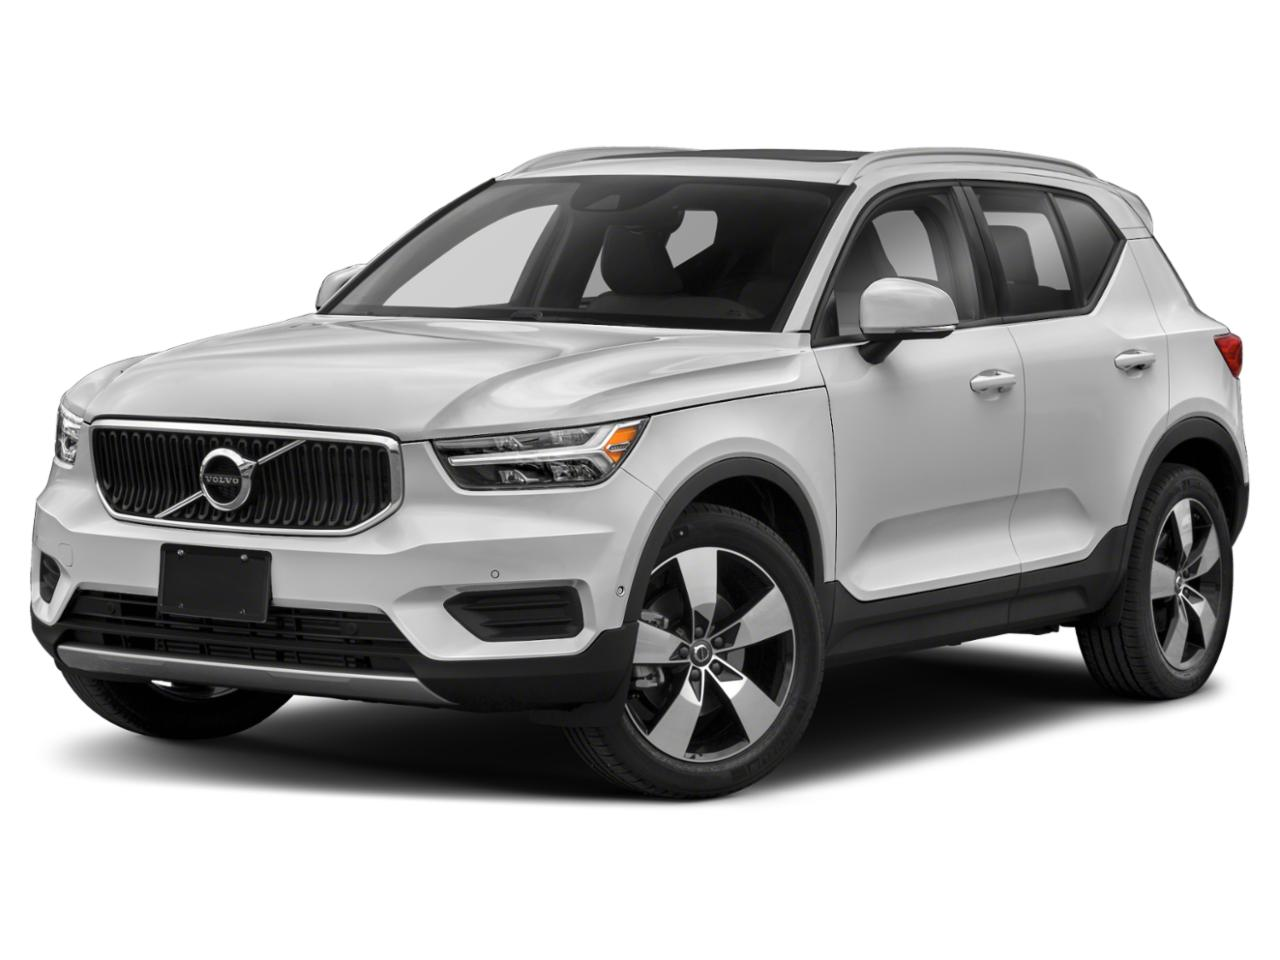 2020 Volvo XC40 Vehicle Photo in Grapevine, TX 76051